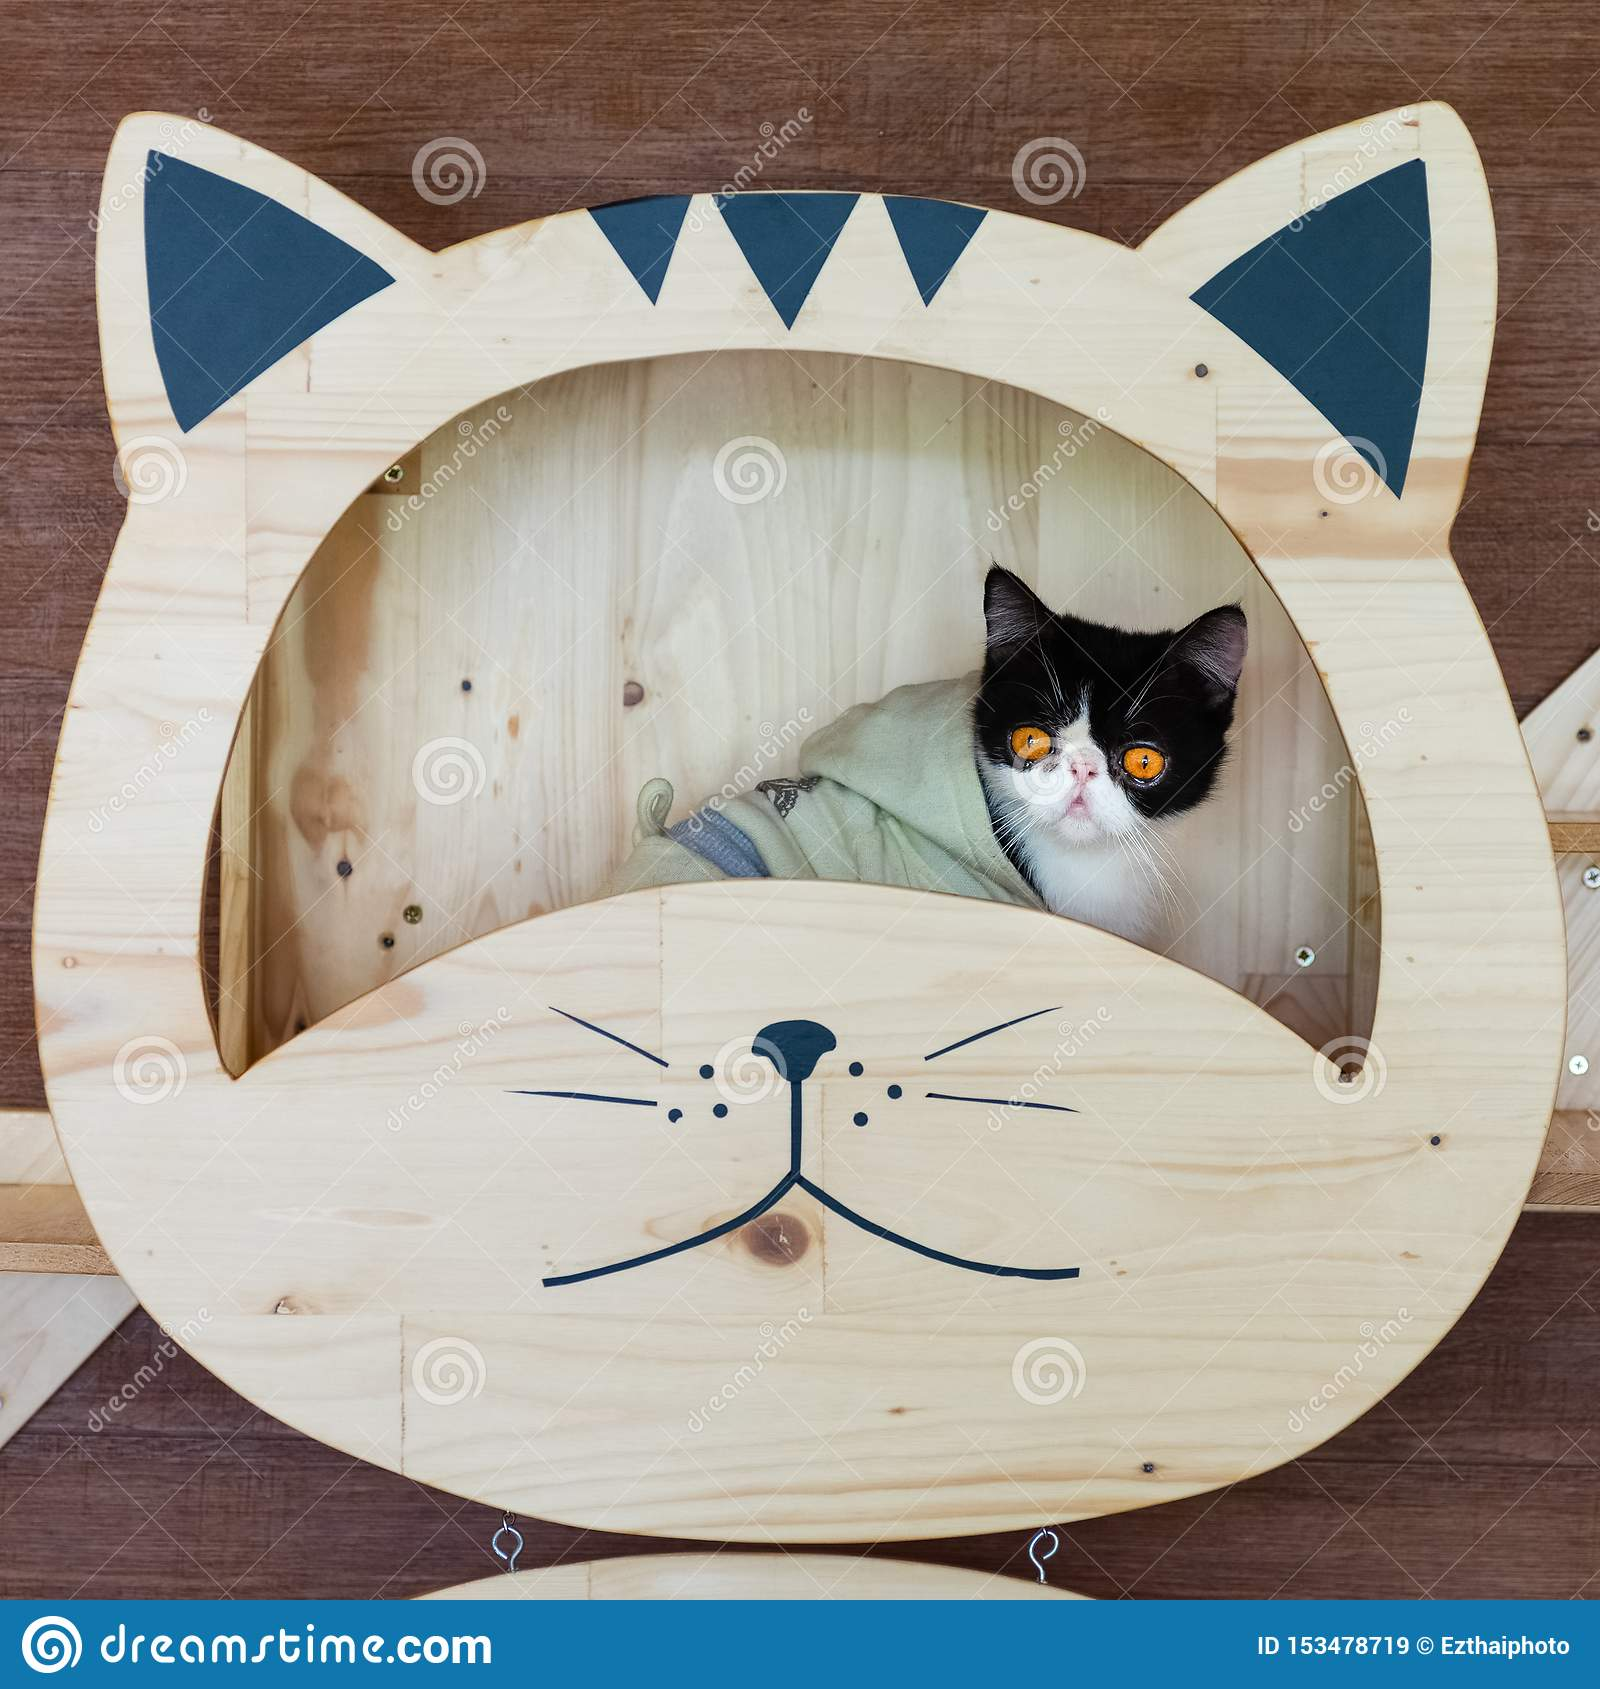 Funny portrait of black and white cat looking with funny emotions face on the cat face shelf. Cute little cat sitting under on